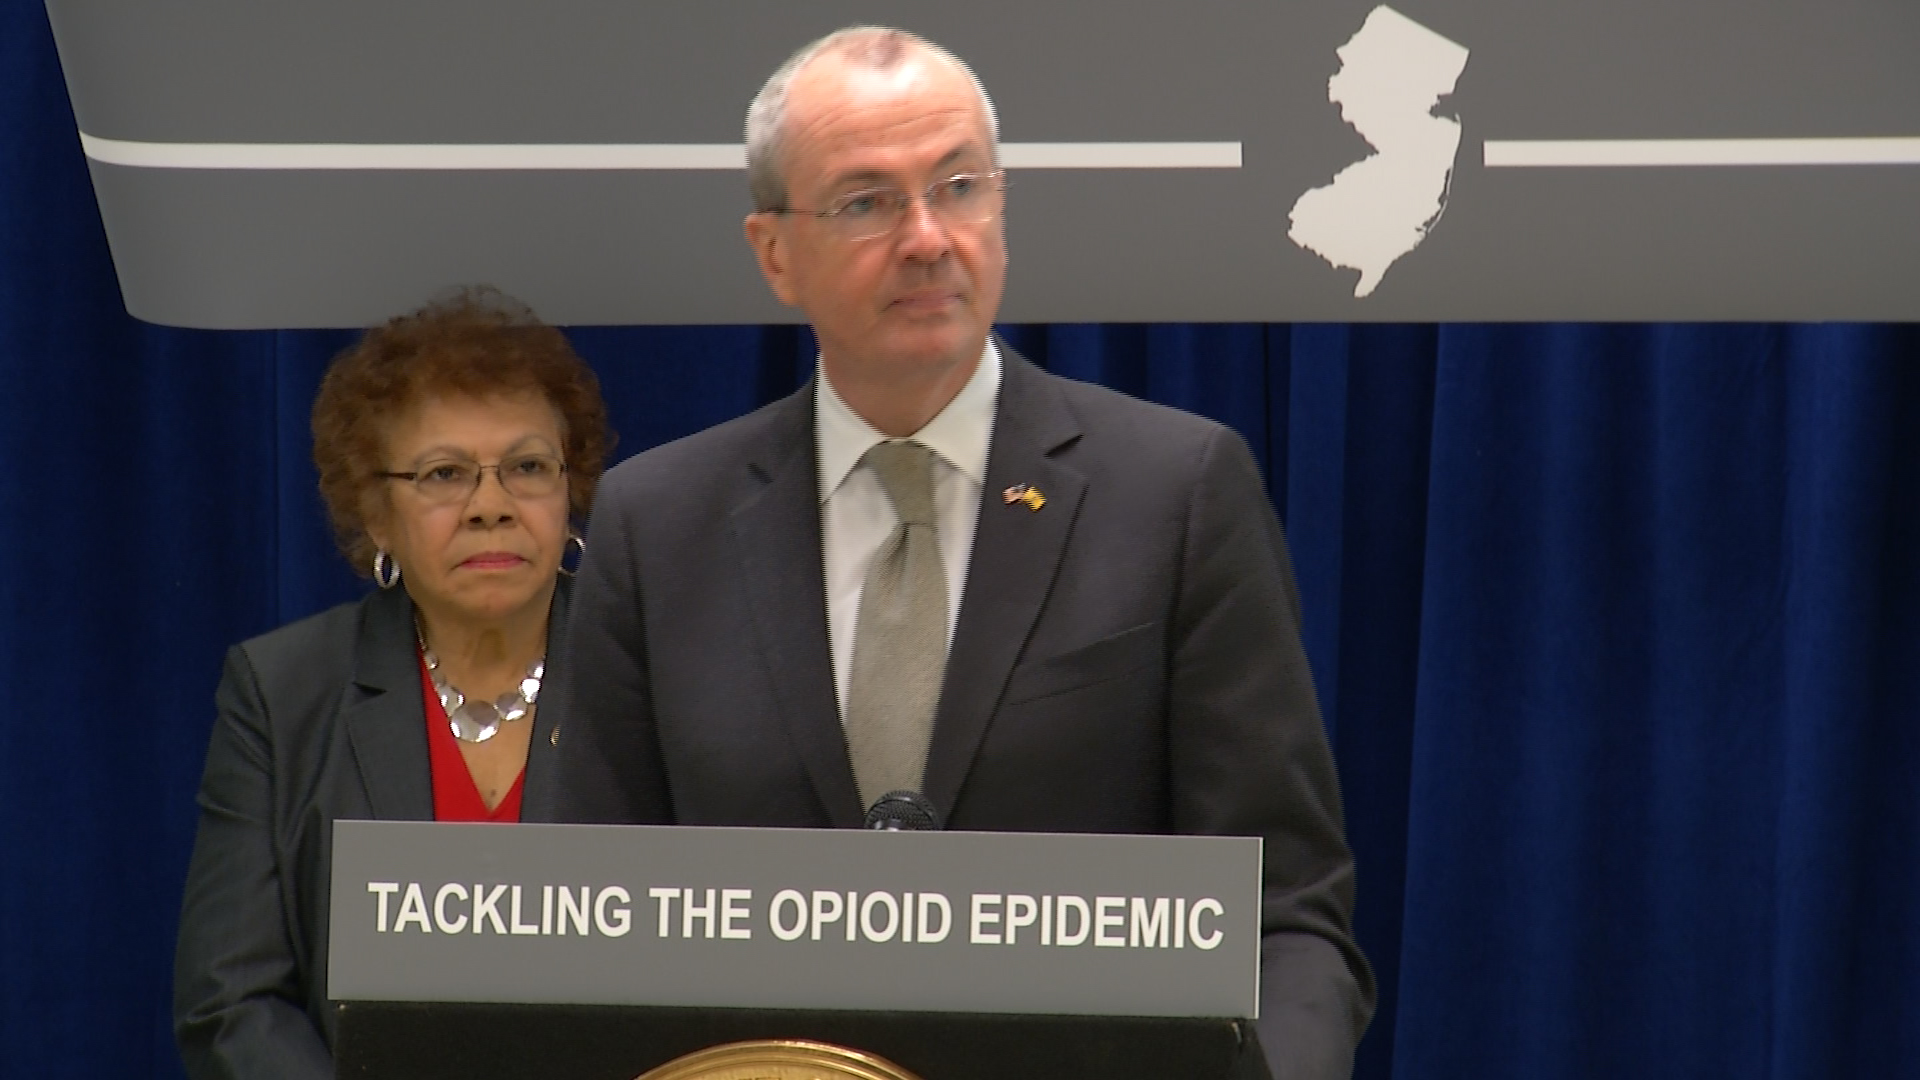 Murphy calls for $100 million to combat opioid crisis